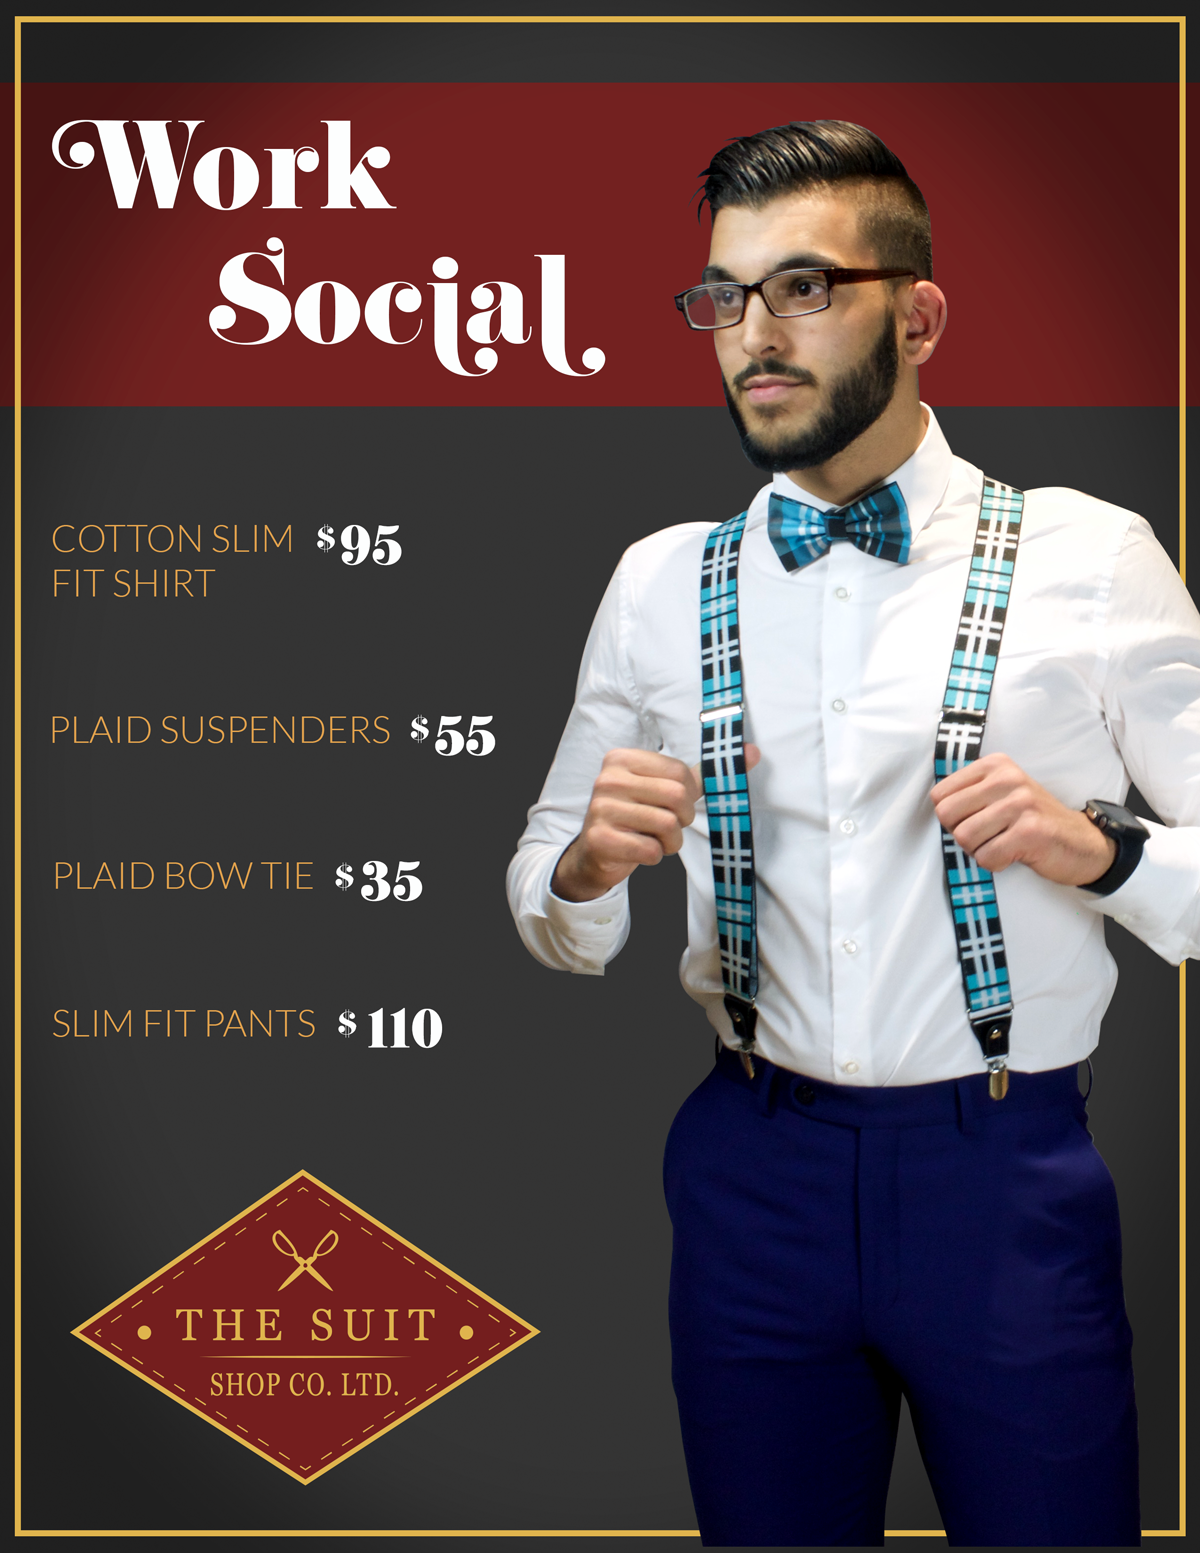 FEATURED OUTFIT: WORK SOCIAL